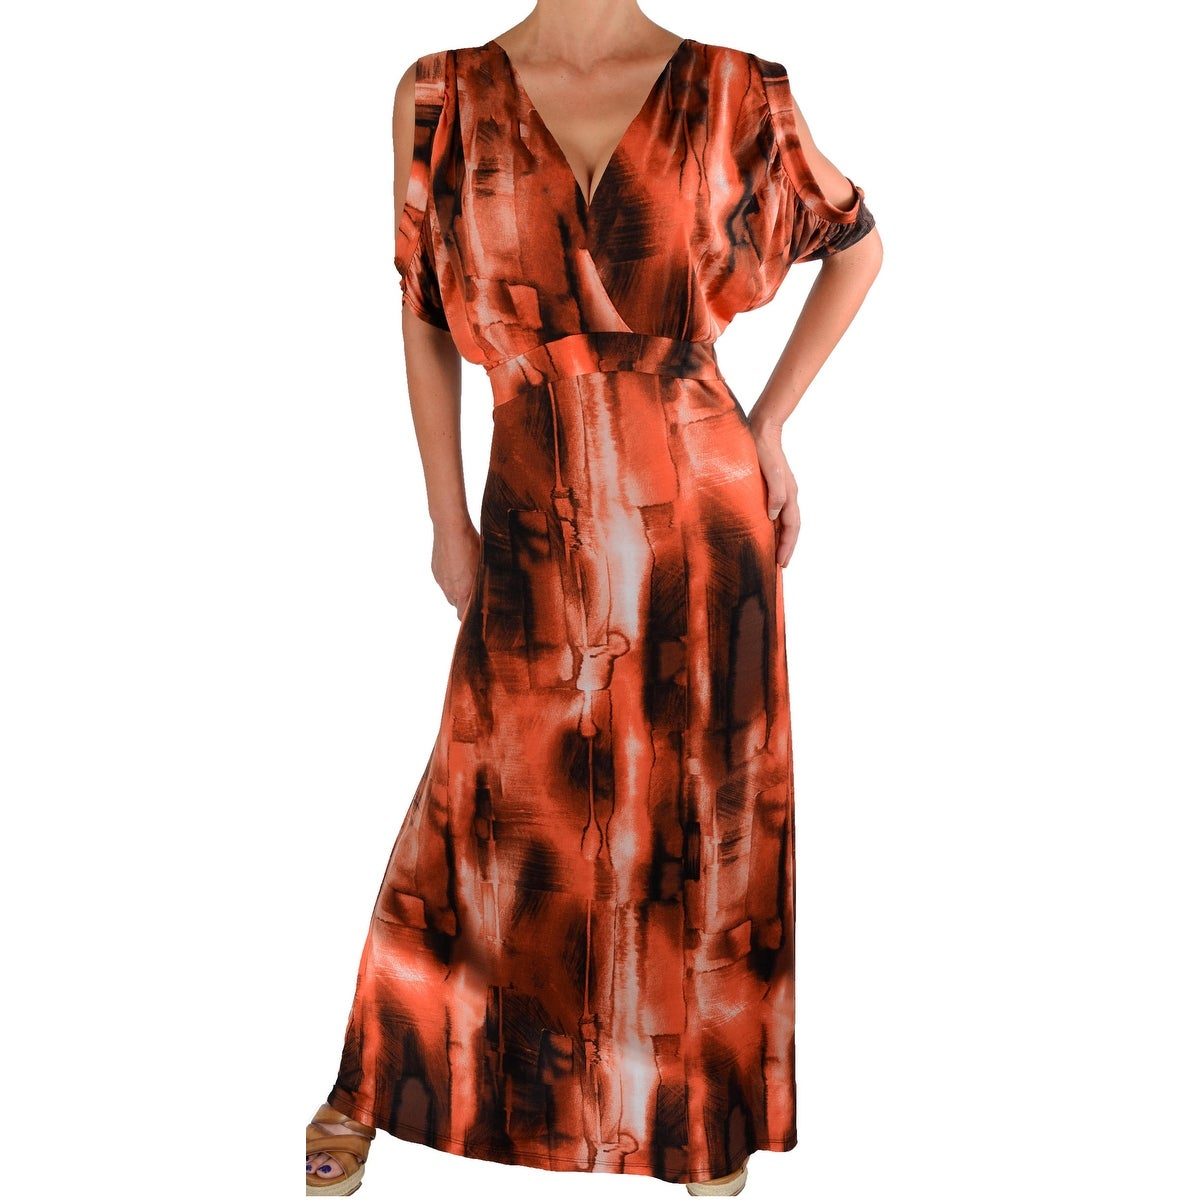 Women/'s Black Slinky Stretch Knit Tunic Short Sleeve Maxi Dresses  Made In USA